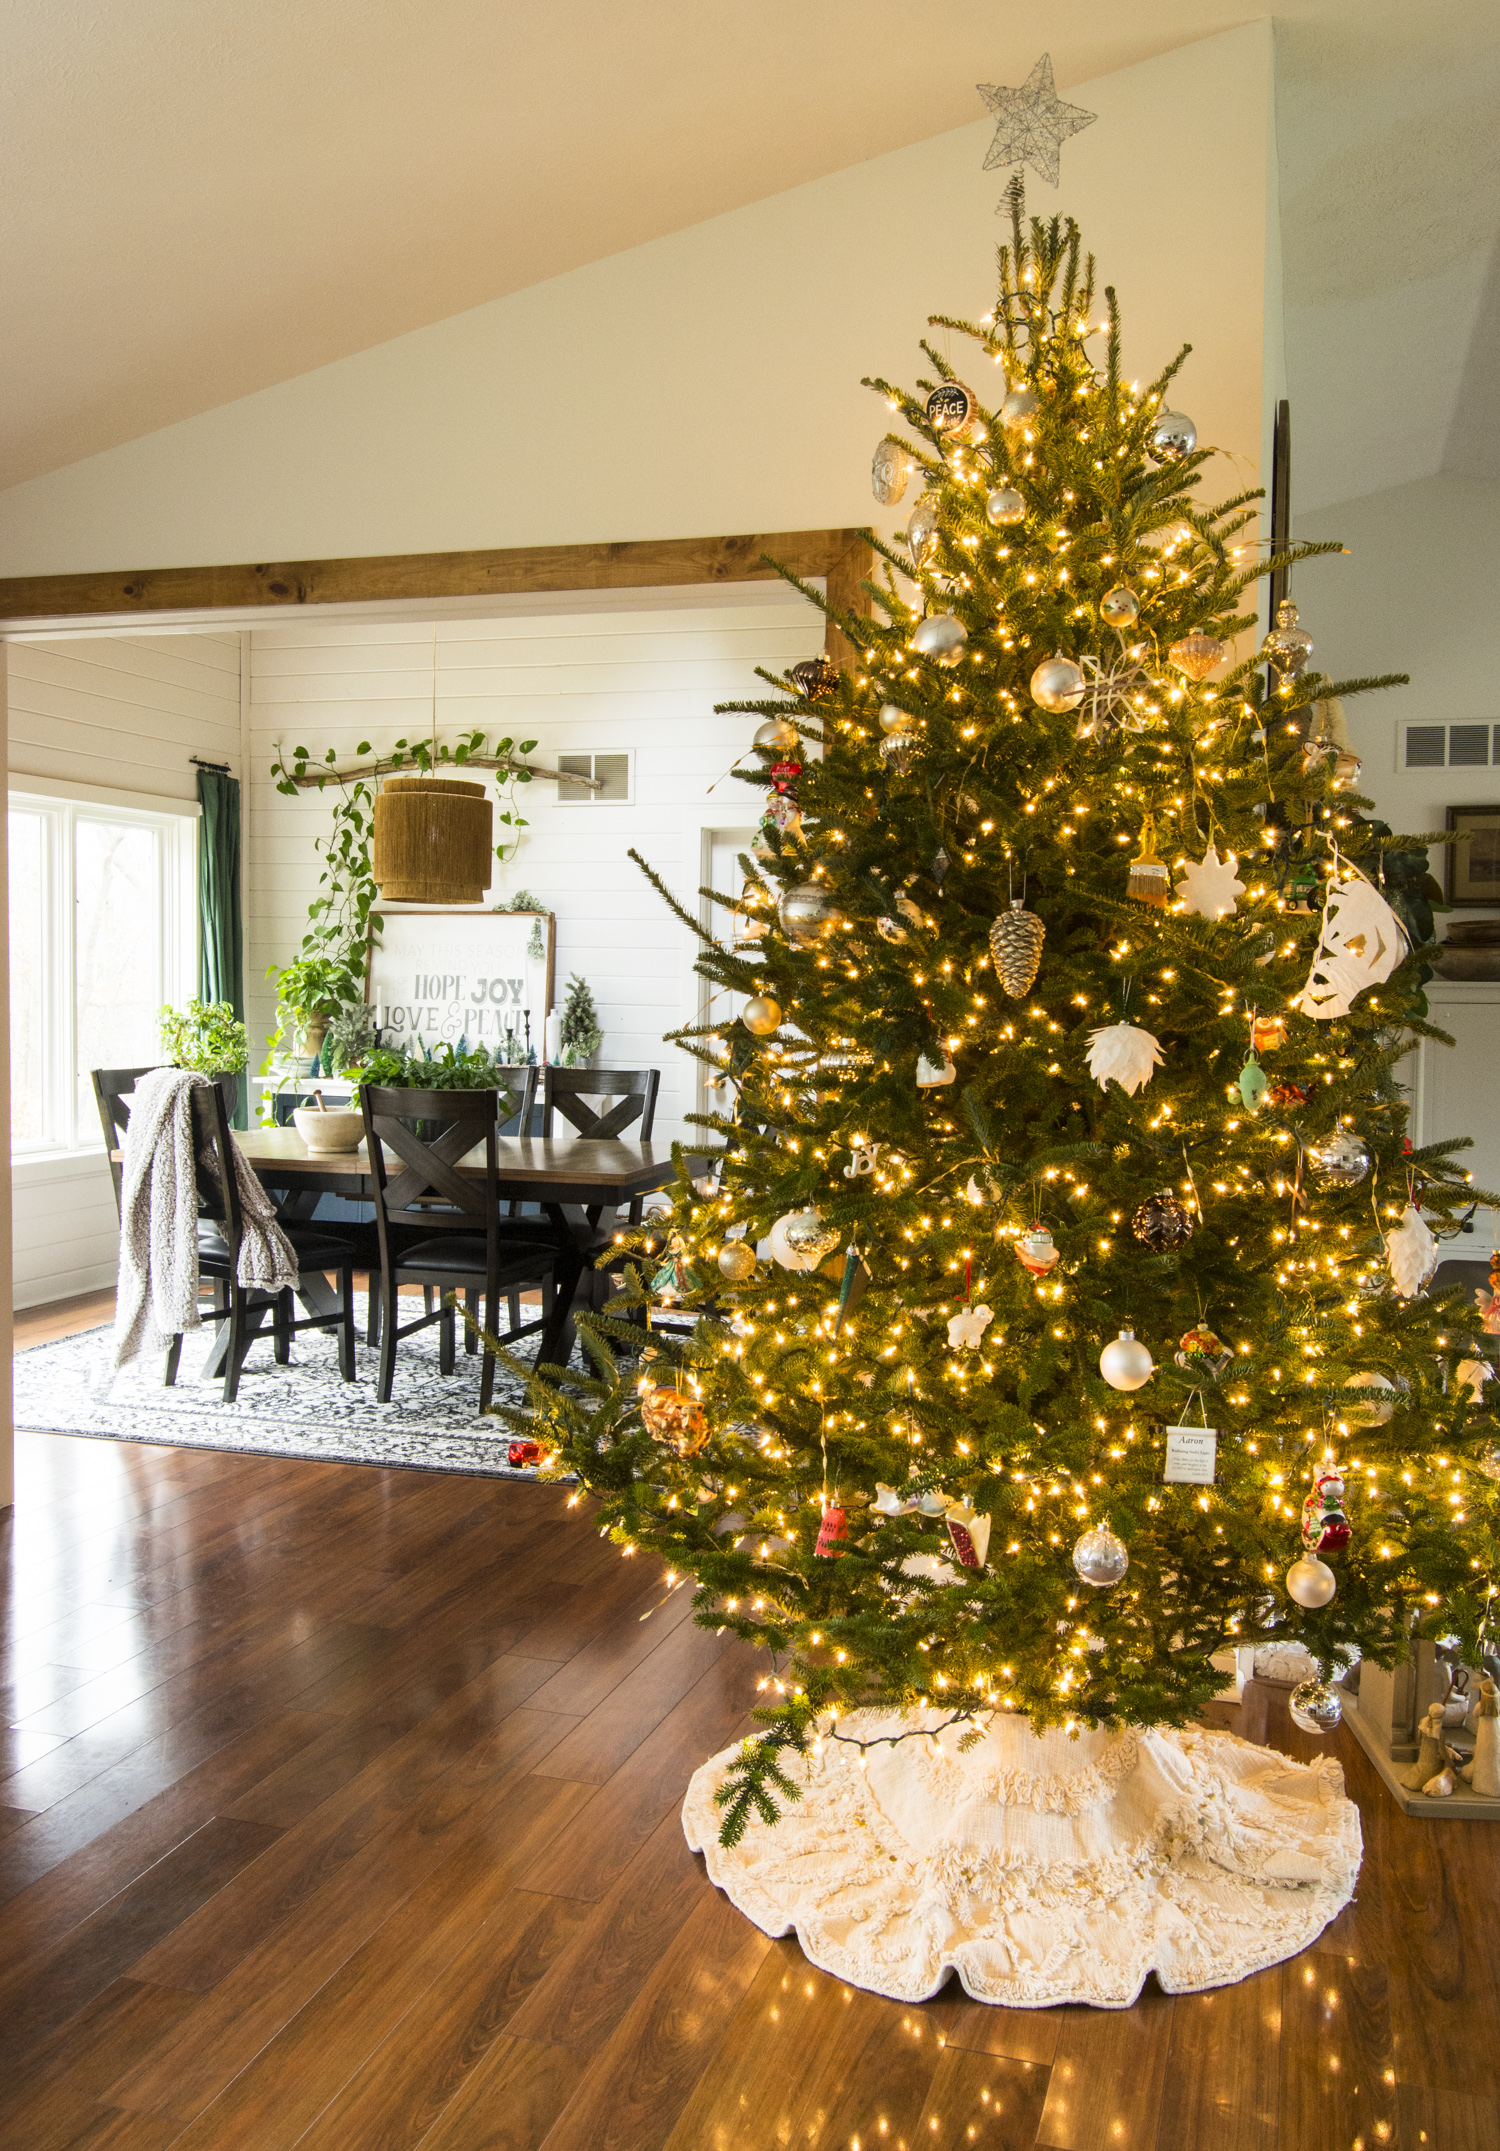 Christmas tree decorated in a modern farmhouse home.